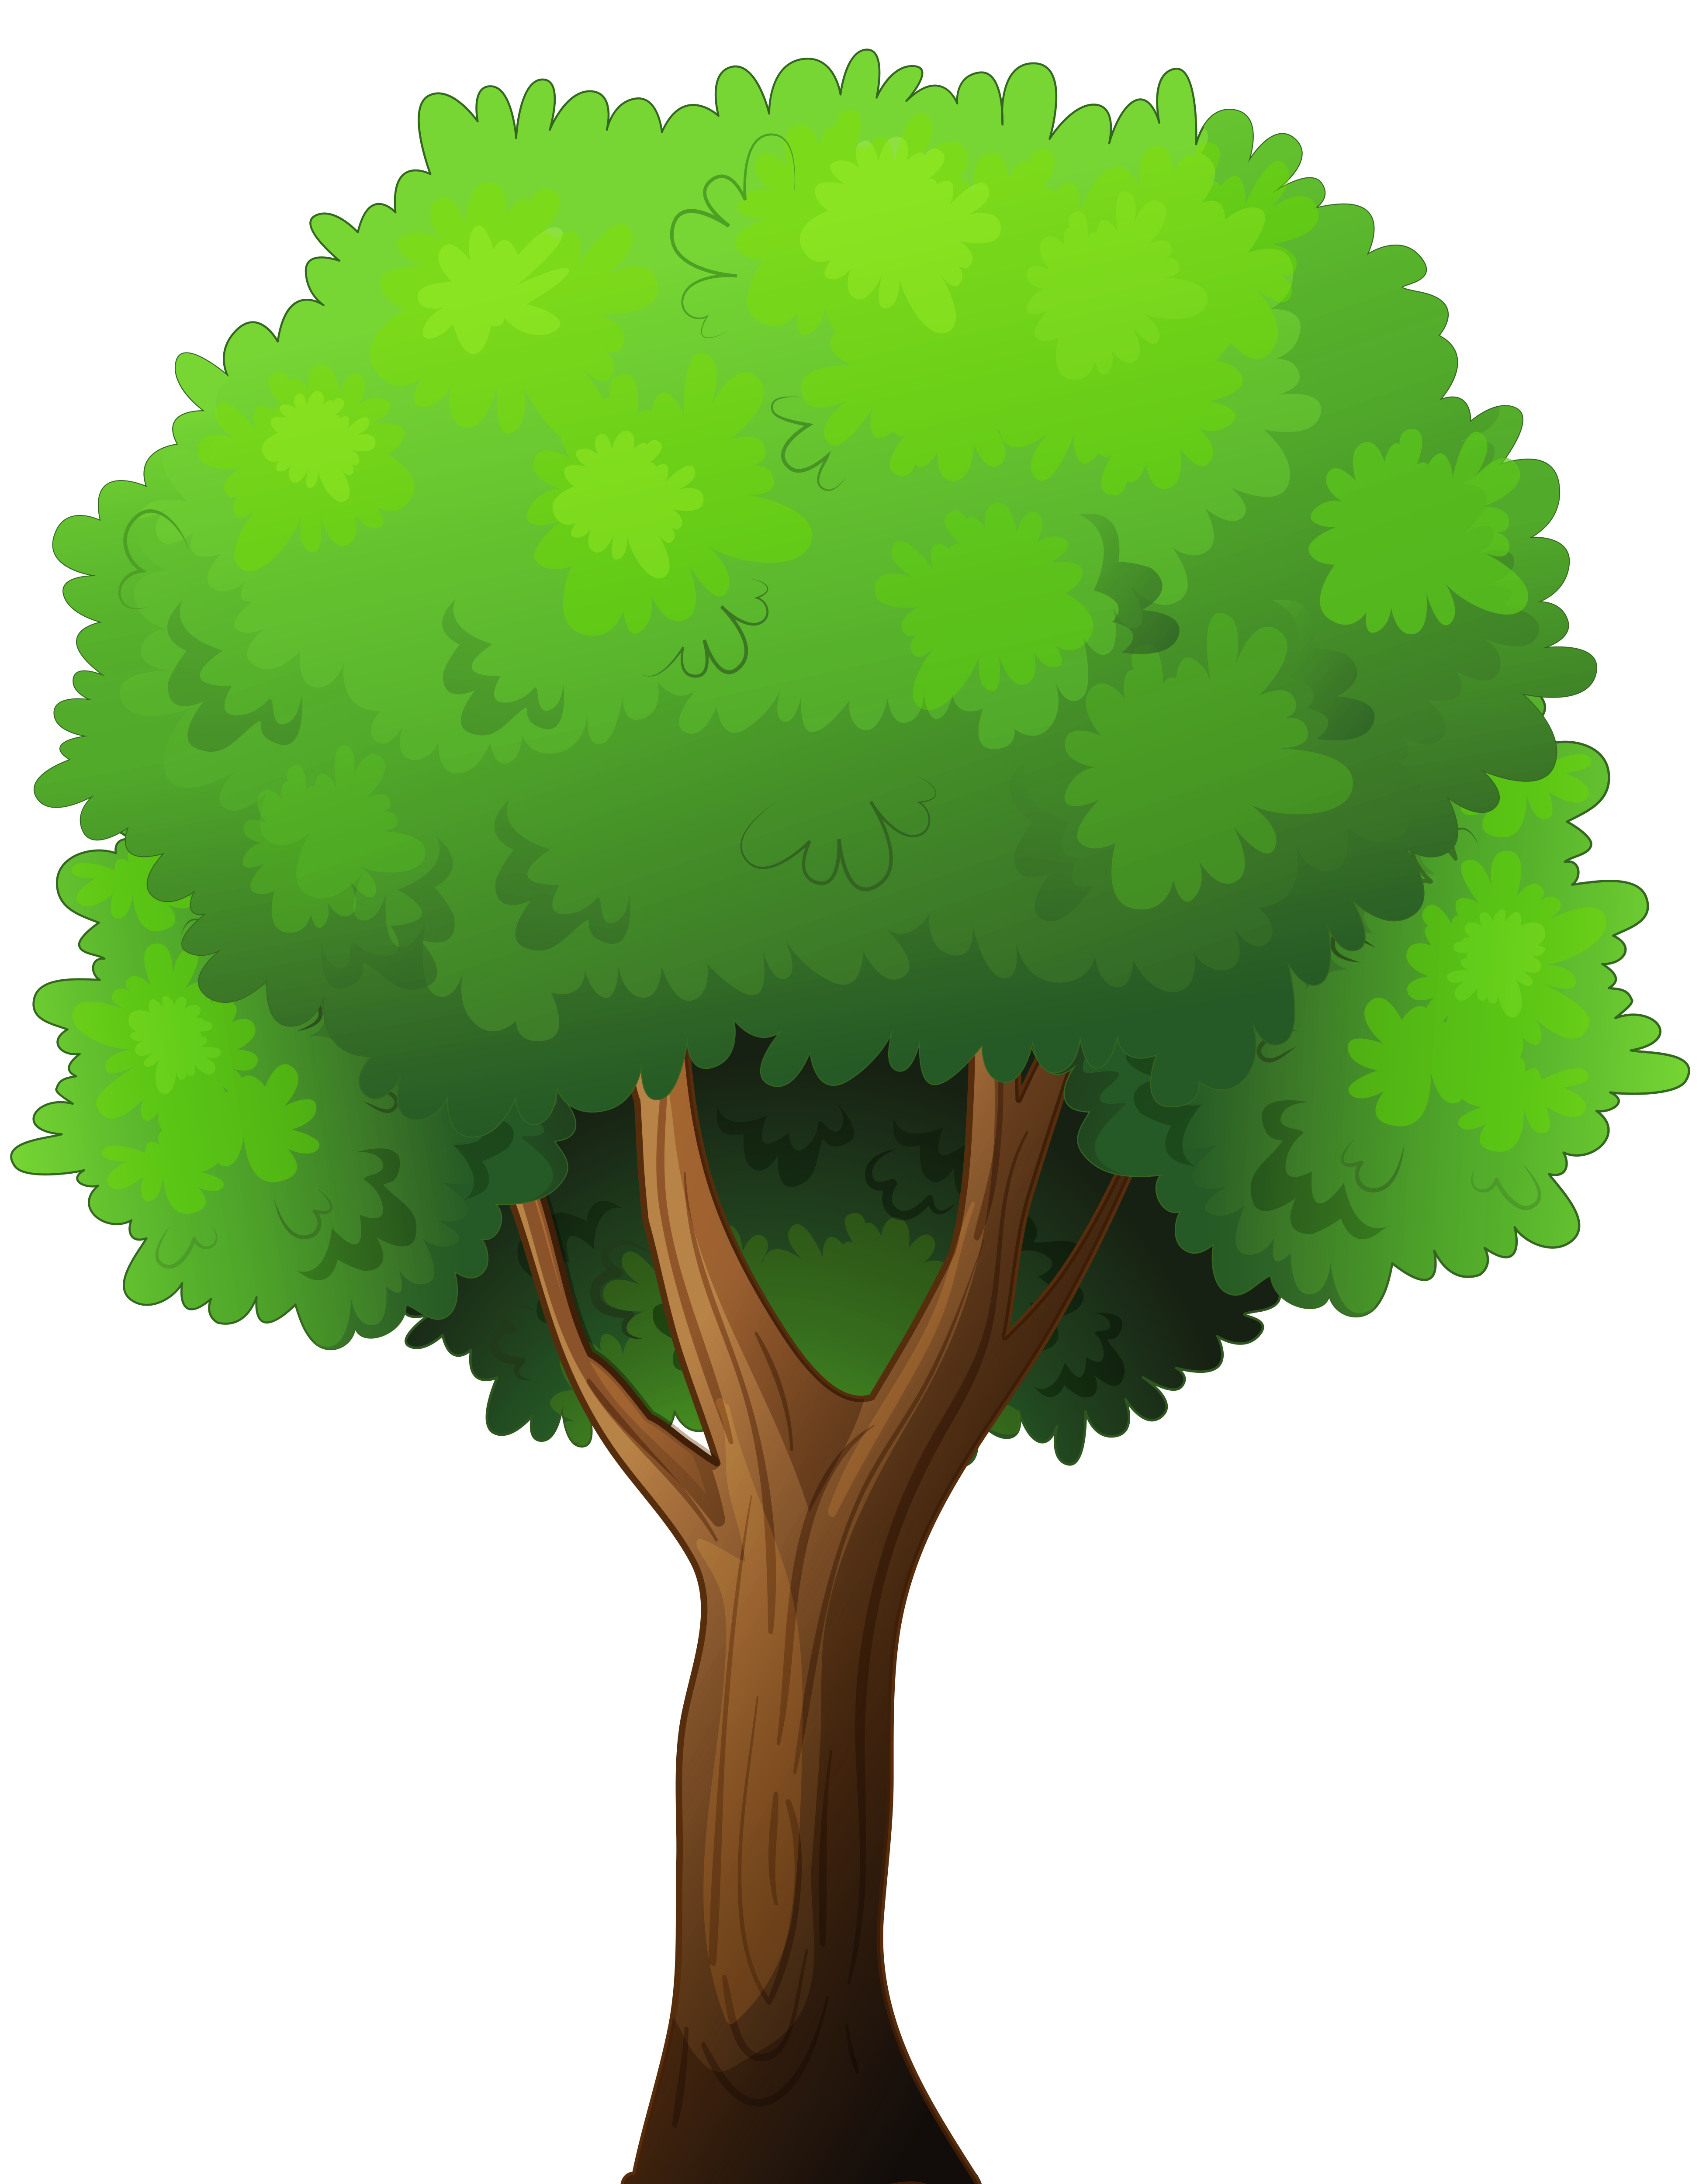 Tree Clipart Png-tree clipart png-13